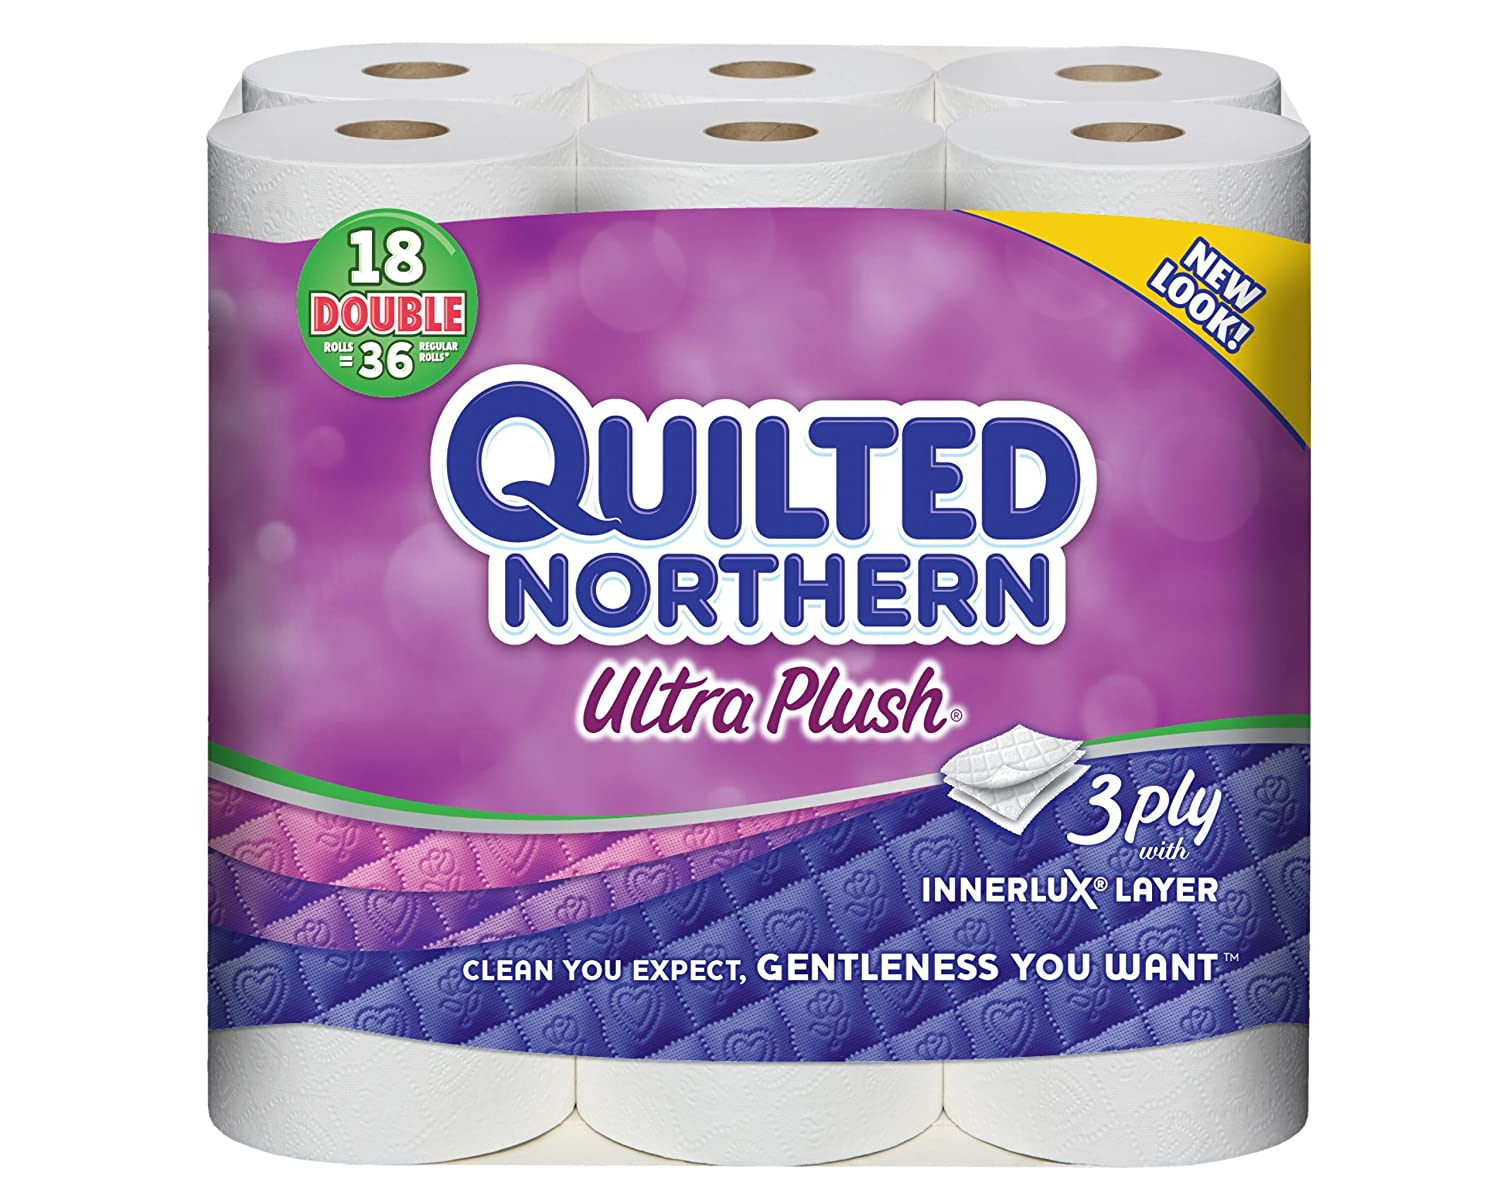 Amazon.com: Quilted Northern Ultra Plus Bath Tissue, 18 Double ... : quilted northern toilet paper coupon - Adamdwight.com